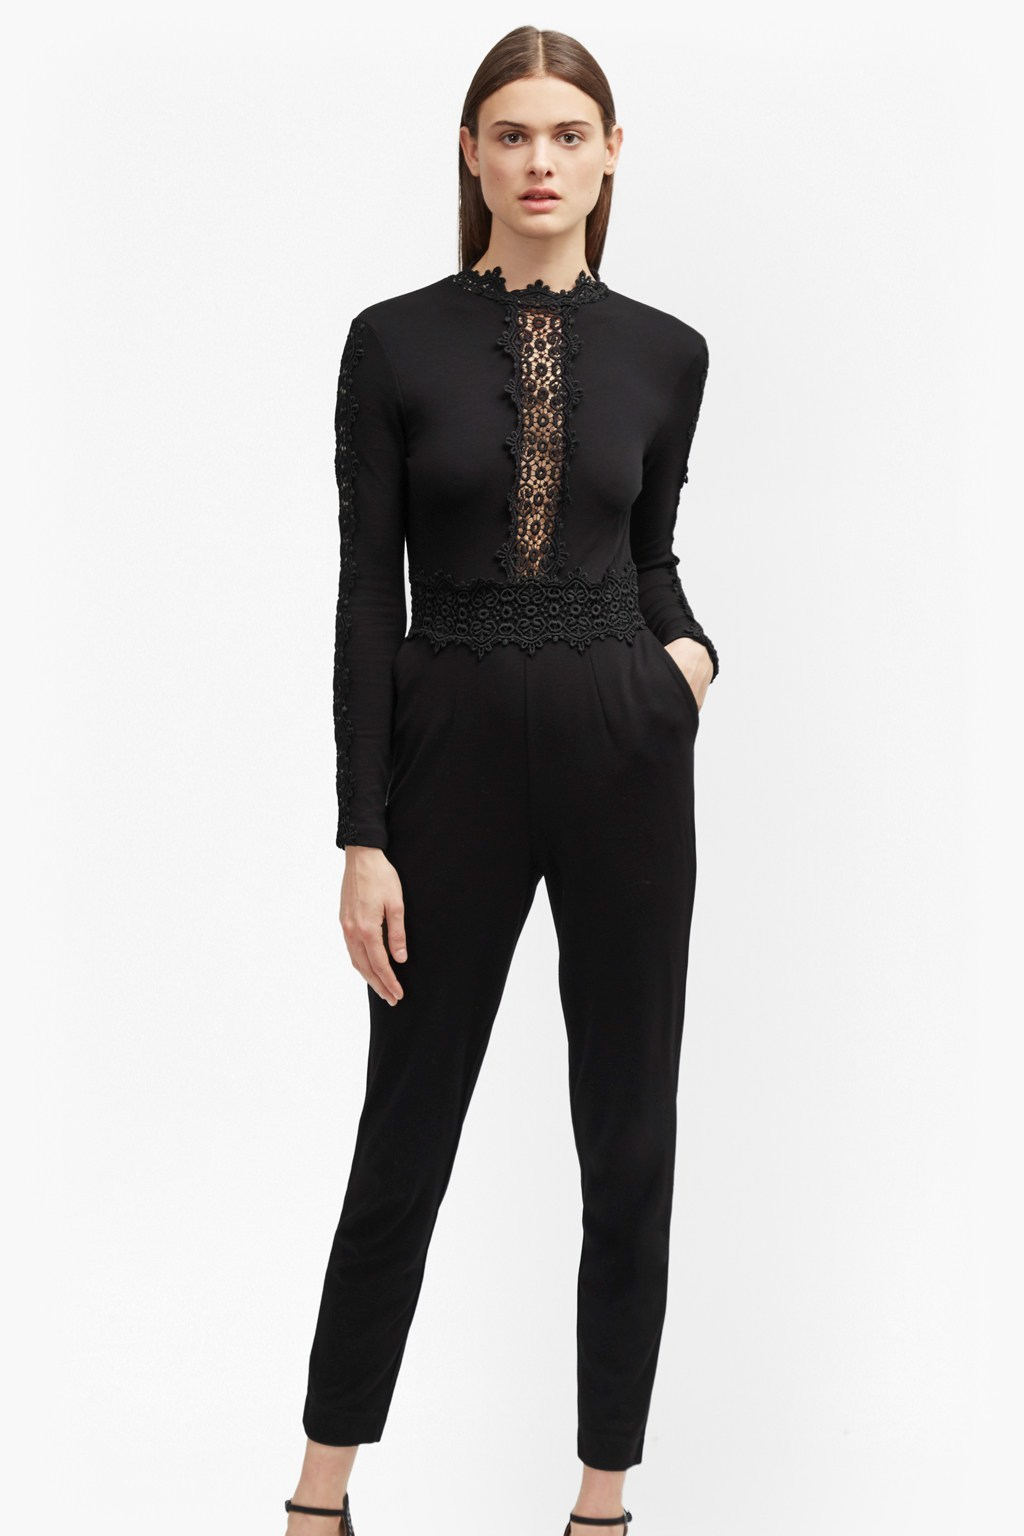 Petra Lace Beau Jumpsuit Black - pattern: plain; neckline: high neck; predominant colour: black; occasions: evening; length: standard; style: top; fibres: viscose/rayon - stretch; fit: tight; sleeve length: long sleeve; sleeve style: standard; texture group: jersey - clingy; pattern type: fabric; pattern size: standard; embellishment: lace; season: a/w 2016; wardrobe: event; embellishment location: bust